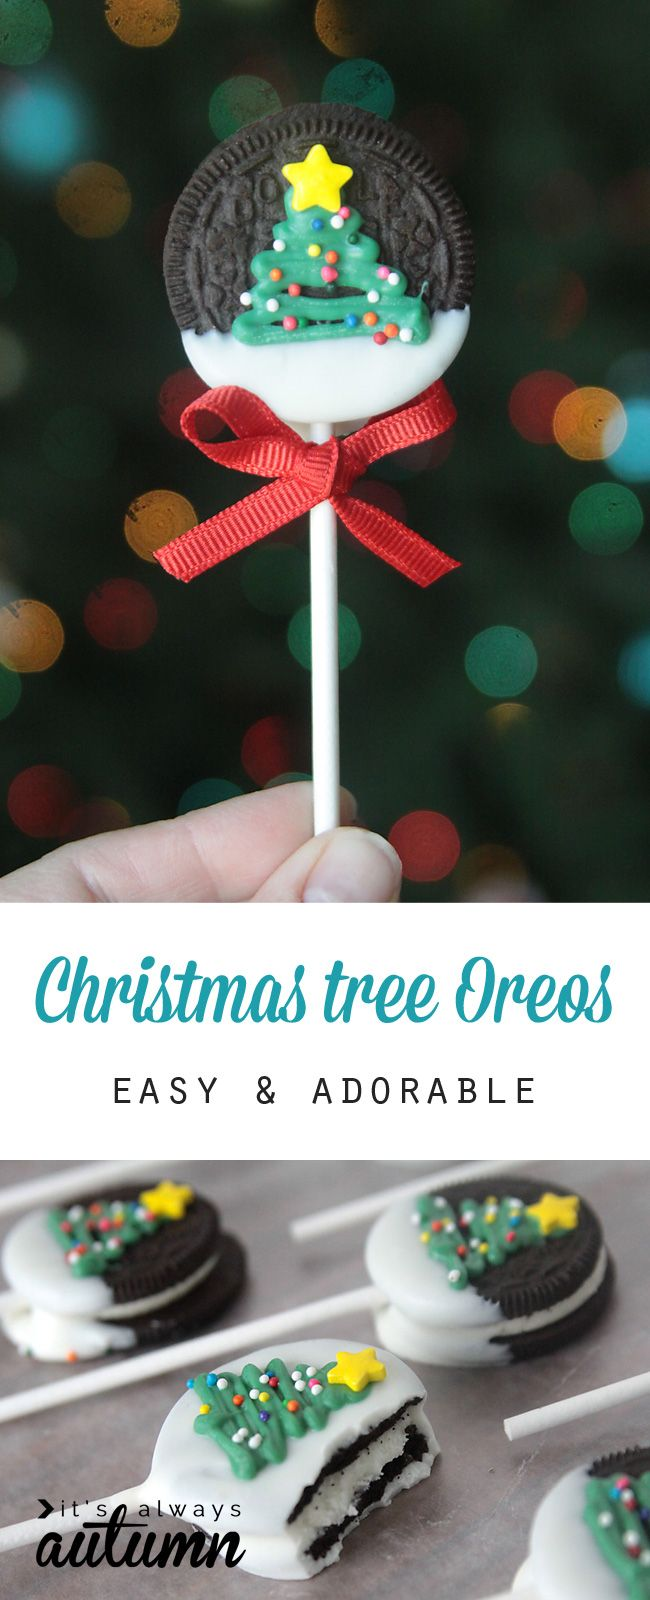 Christmas Crafts For Family Part - 24: Christmas Treats That You Can Eat! - These Christmas Recipes Make The  Perfect Edible Gifts